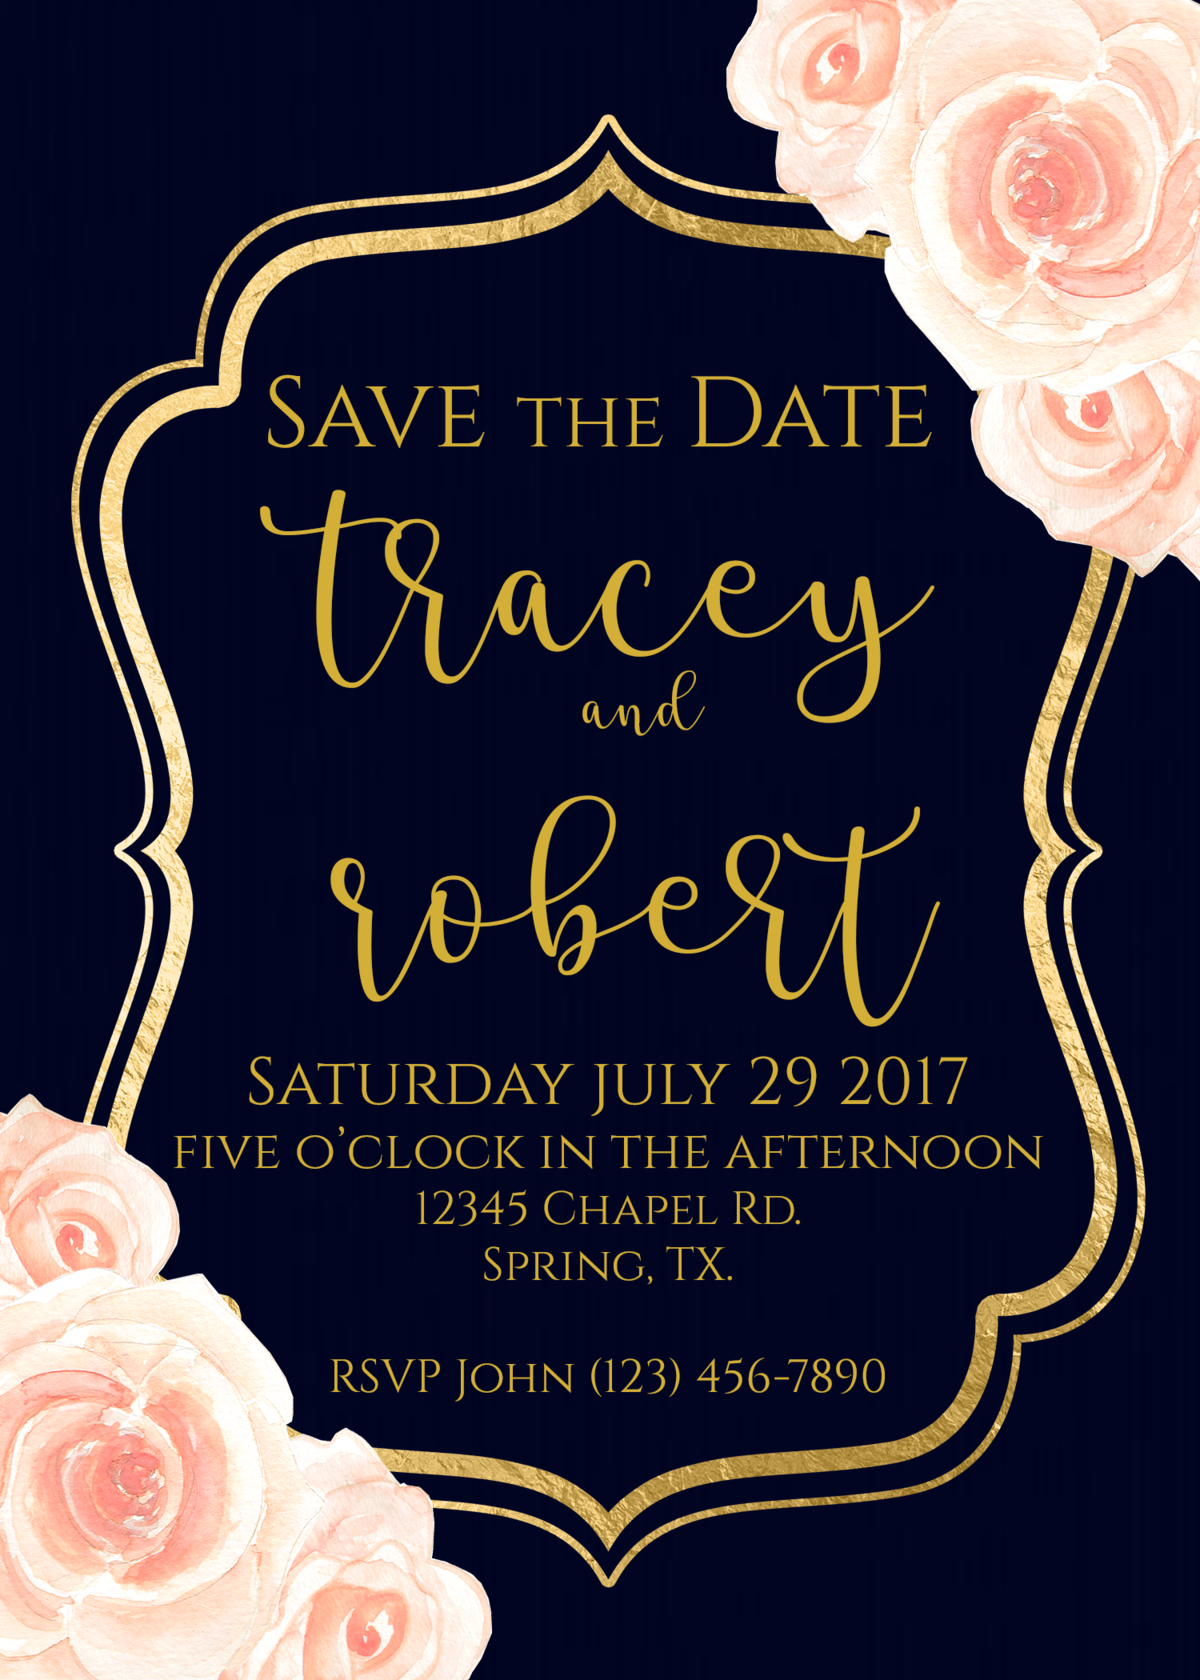 Blush Pink & Navy Save the Dates - Copy